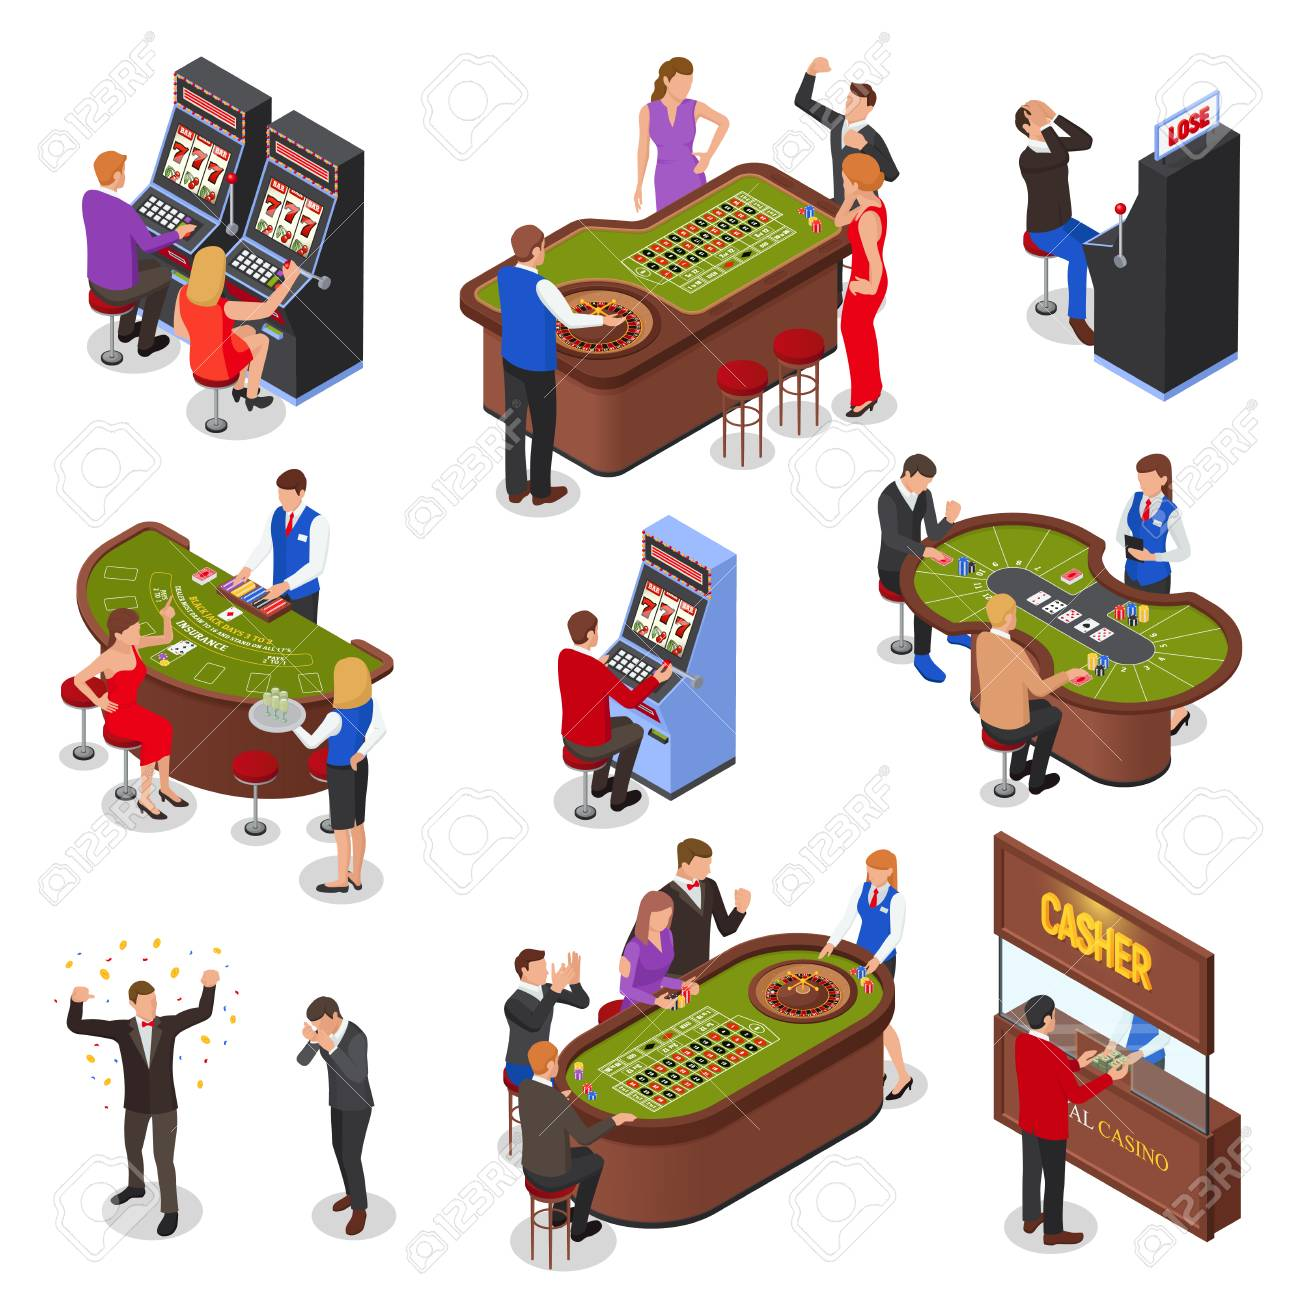 play free games and win real money and prizes